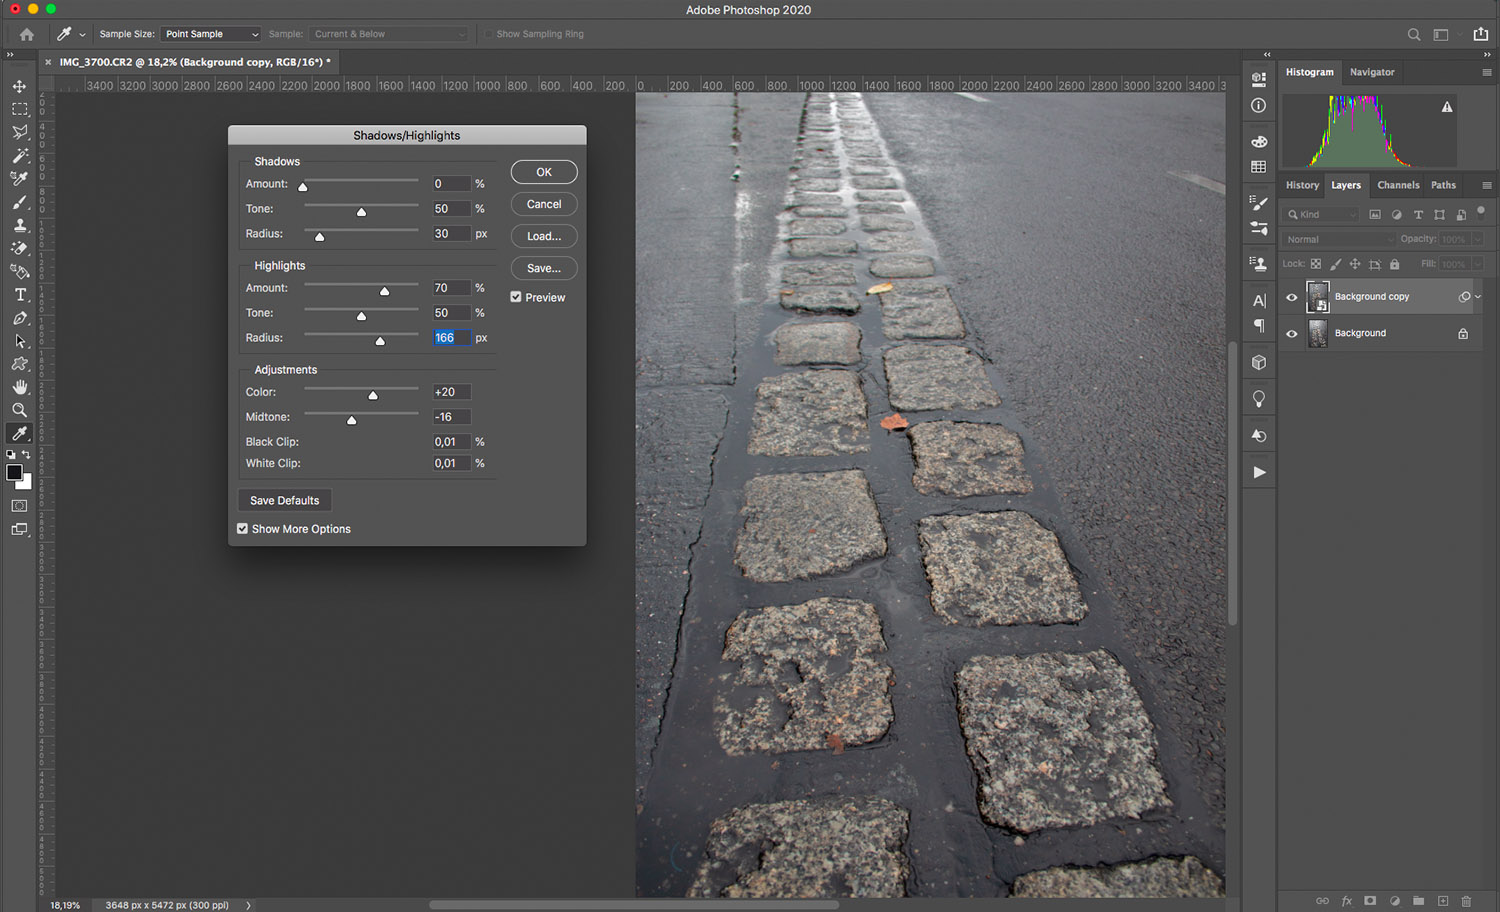 How to remove glare using shadows/highlights